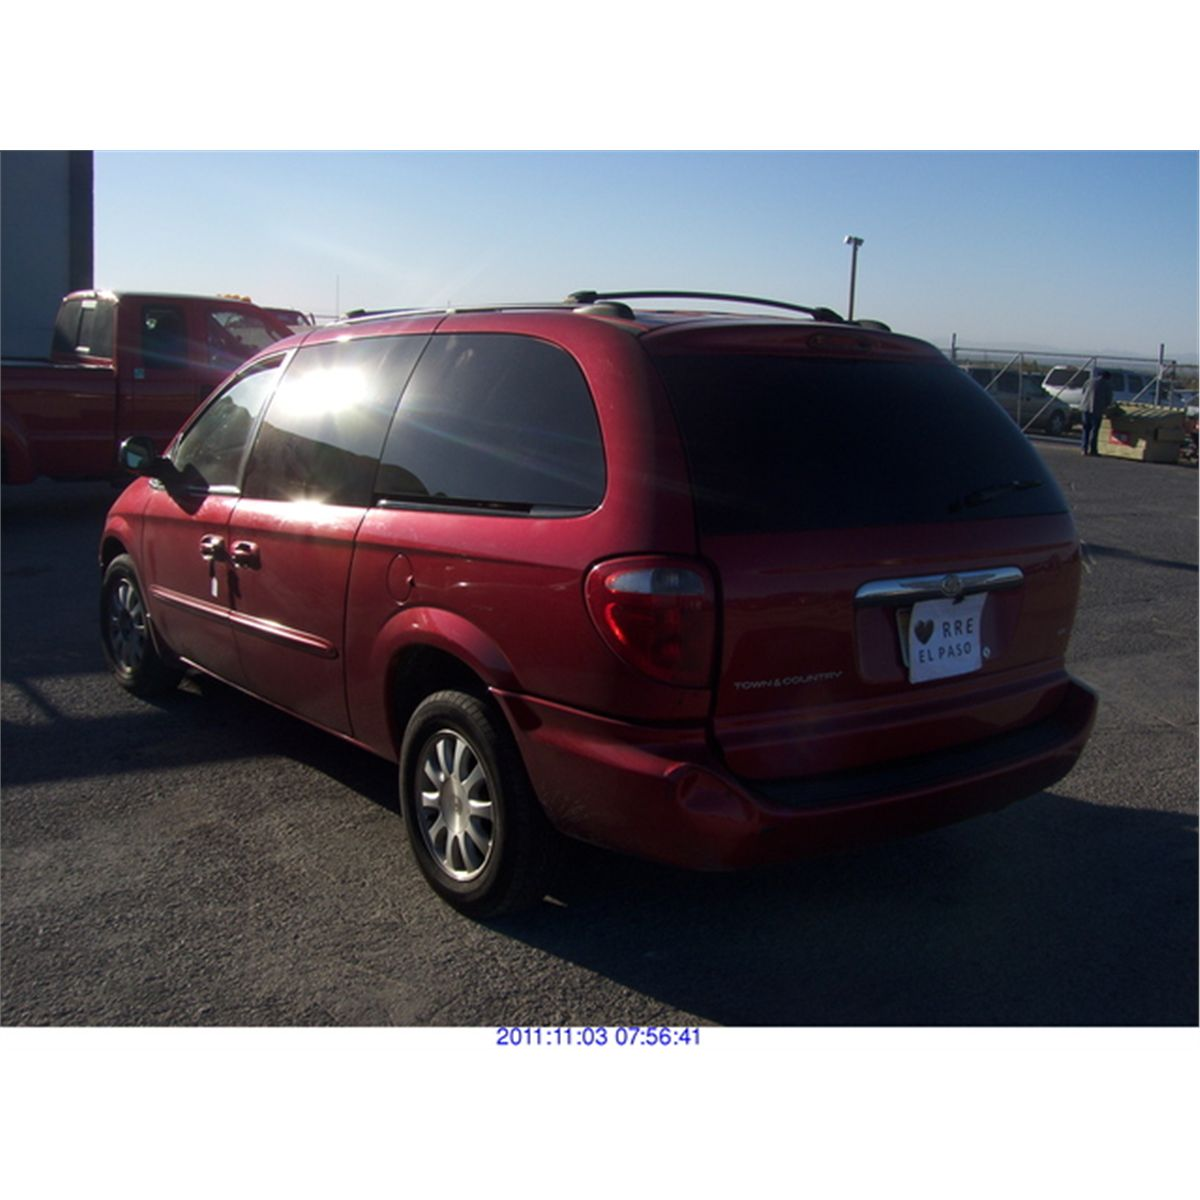 2003 chrysler town and country salvage title. Black Bedroom Furniture Sets. Home Design Ideas